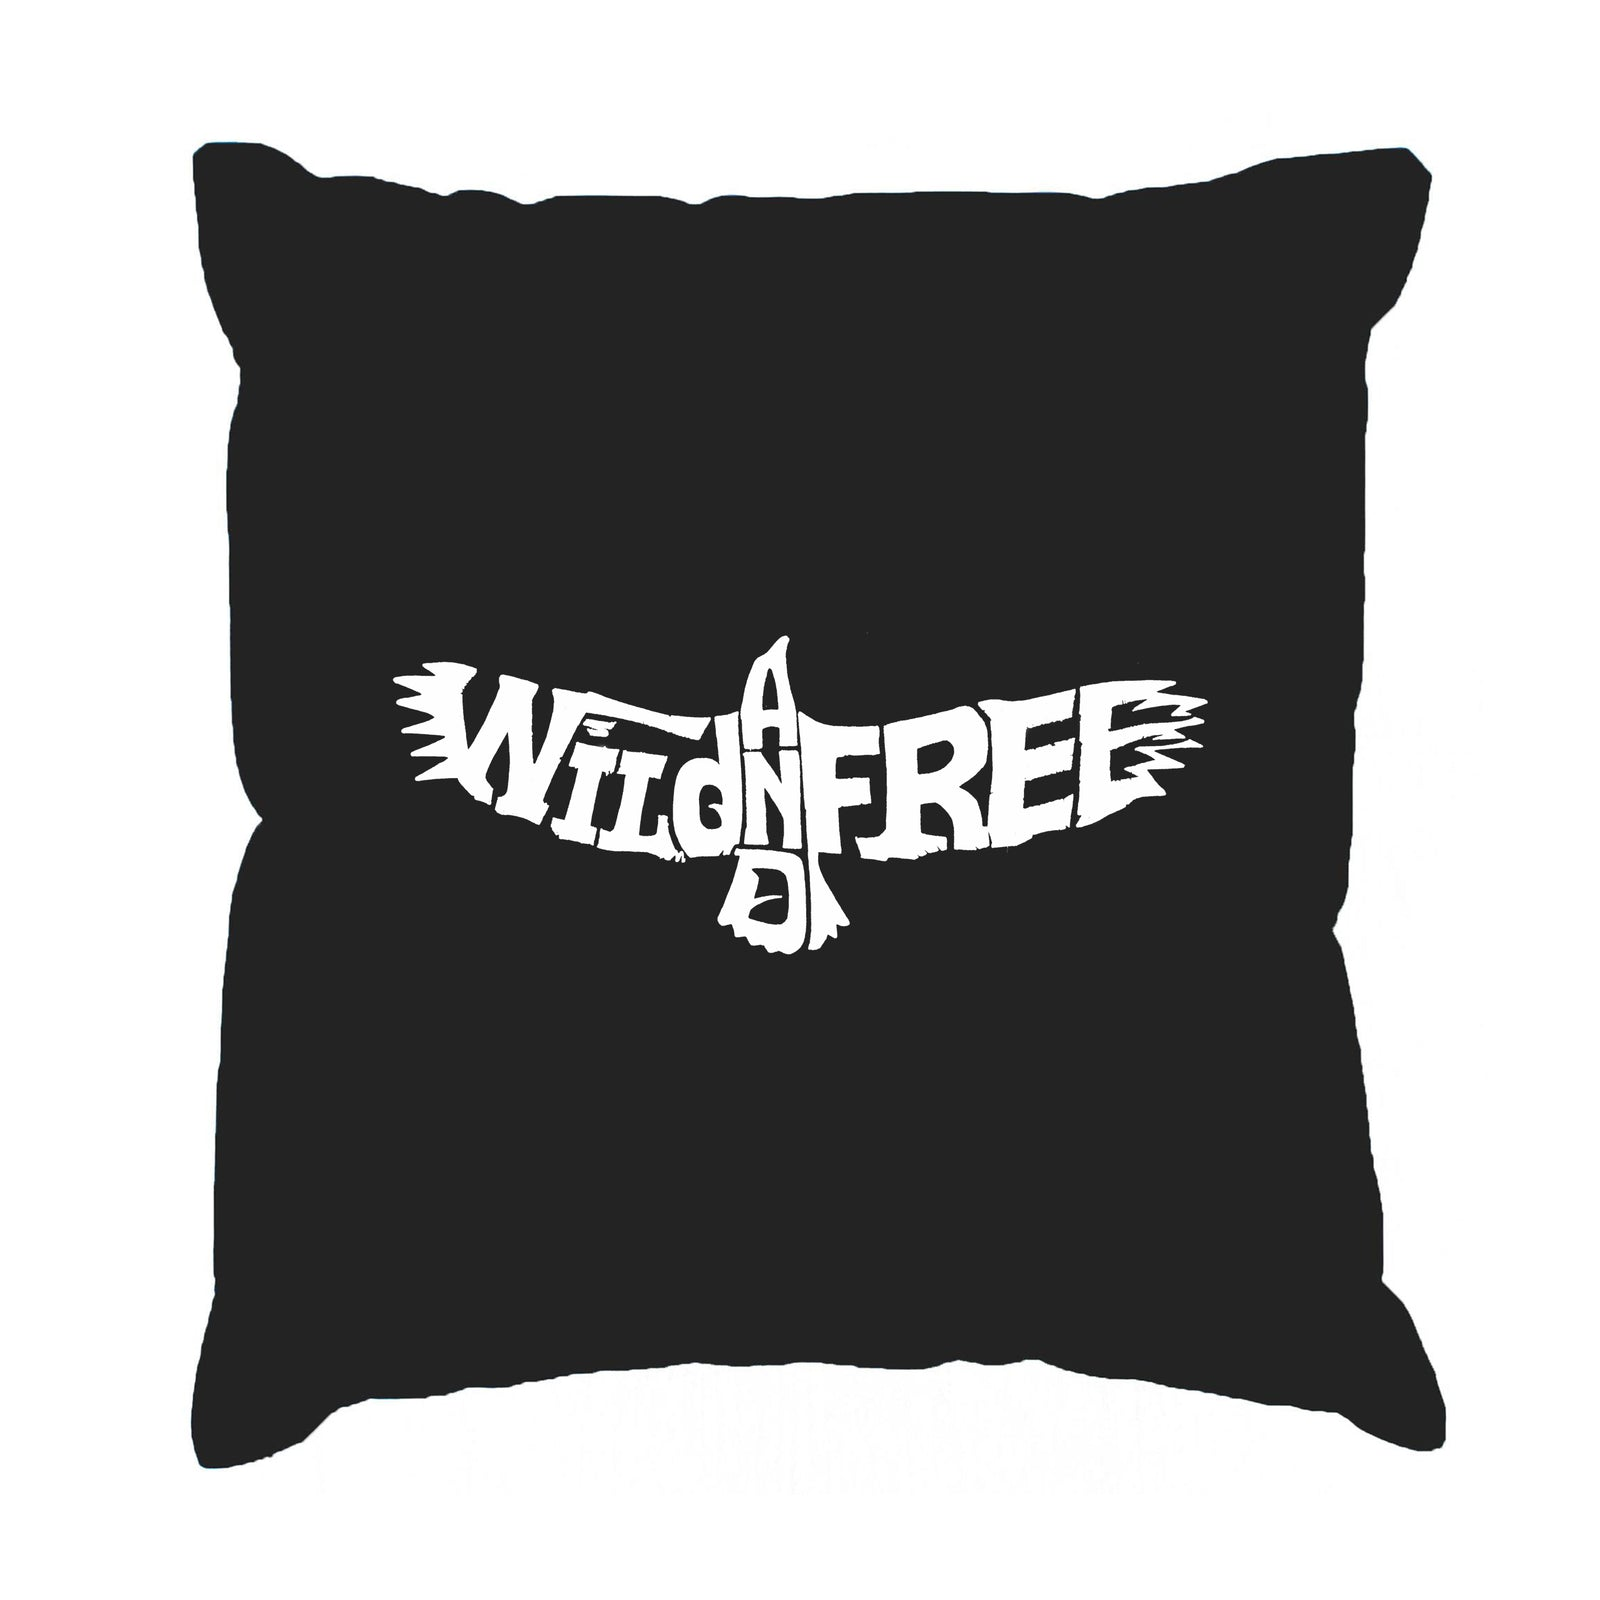 Throw Pillow Cover - Word Art - Wild and Free Eagle